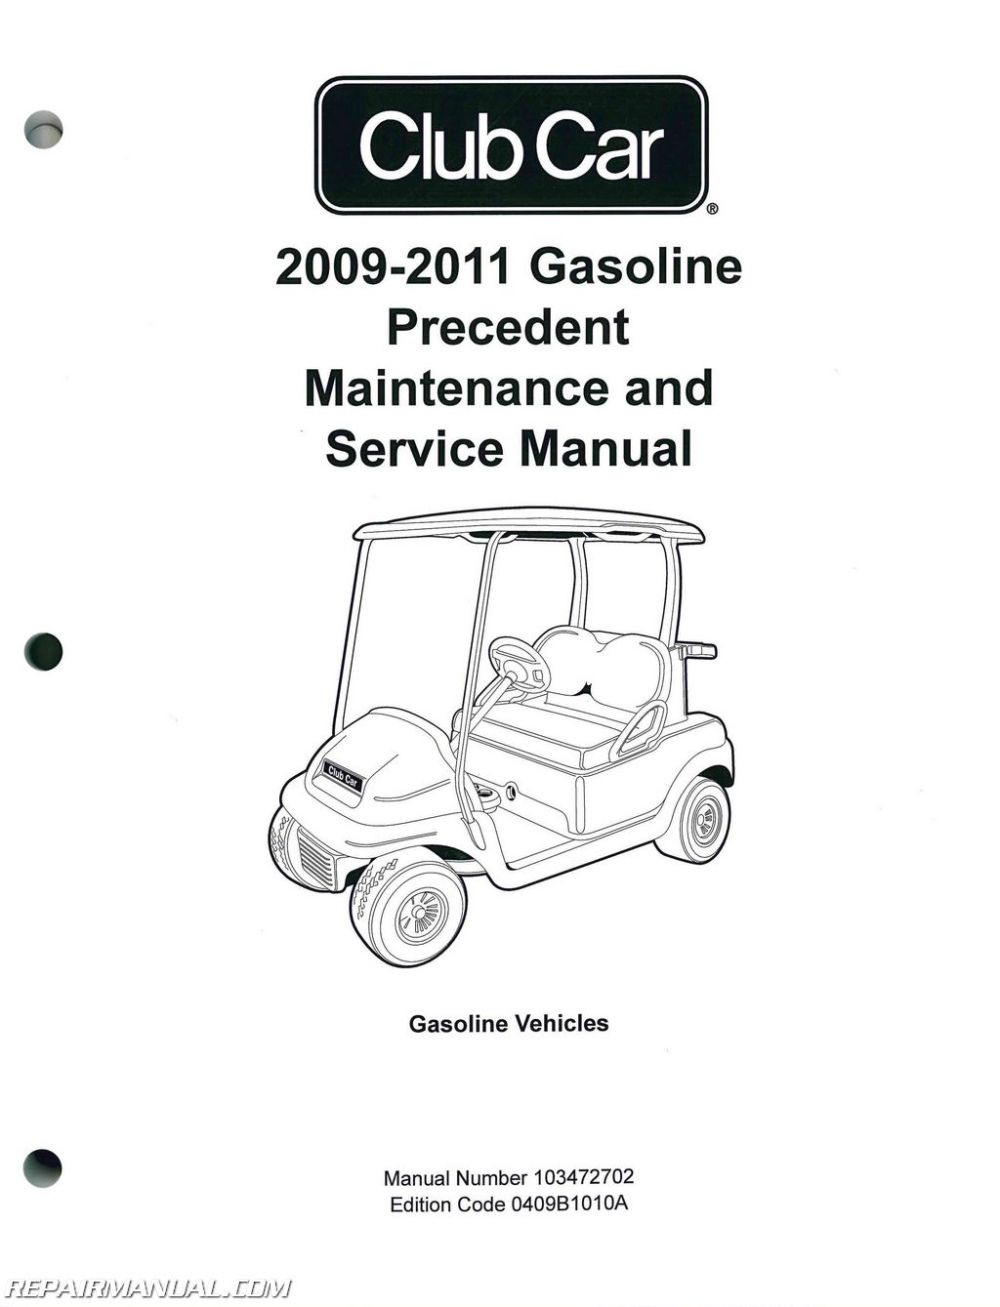 medium resolution of 2009 2011 club car gasoline precedent maintenance and service manual jpg